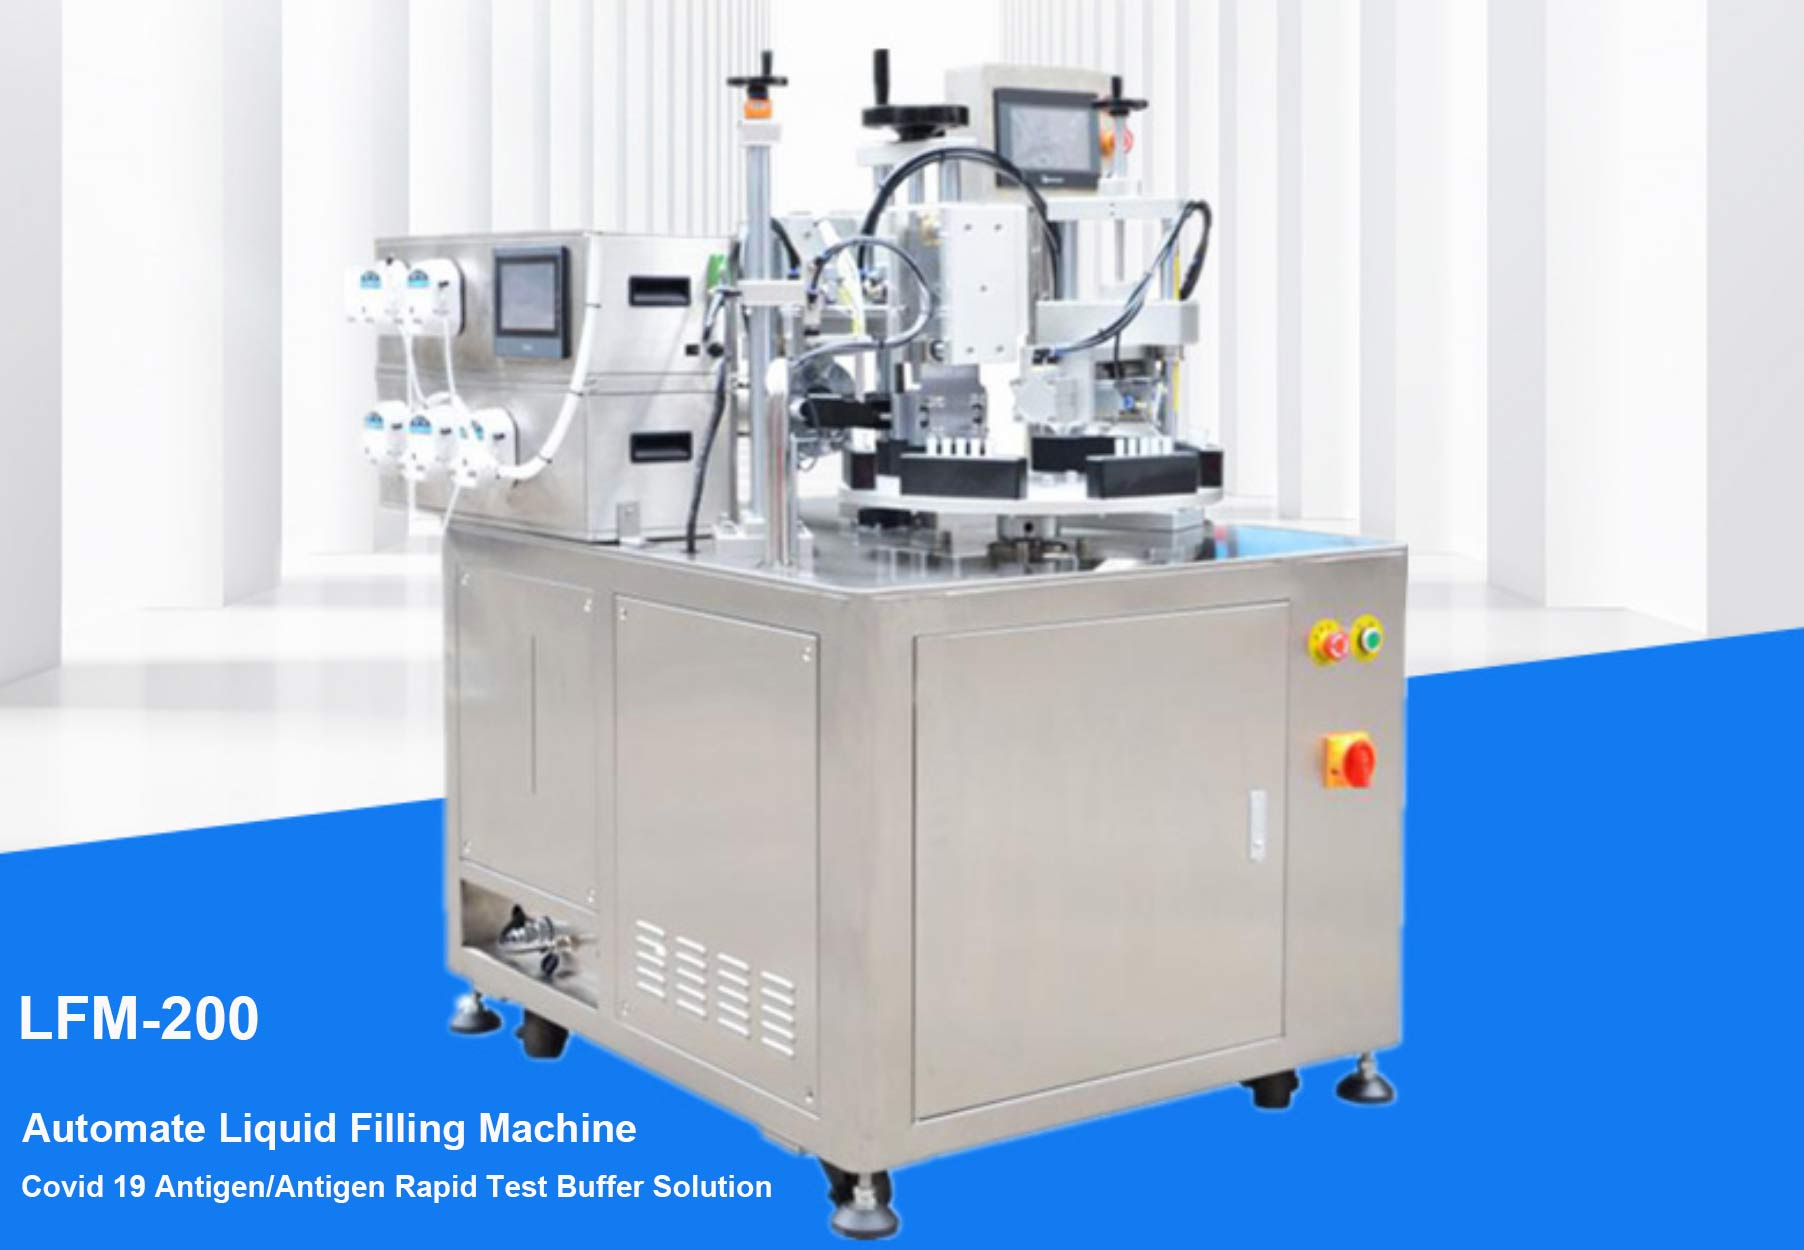 liquid-filling-machine-for-covid-19-igg-igm-test-buffer-solution